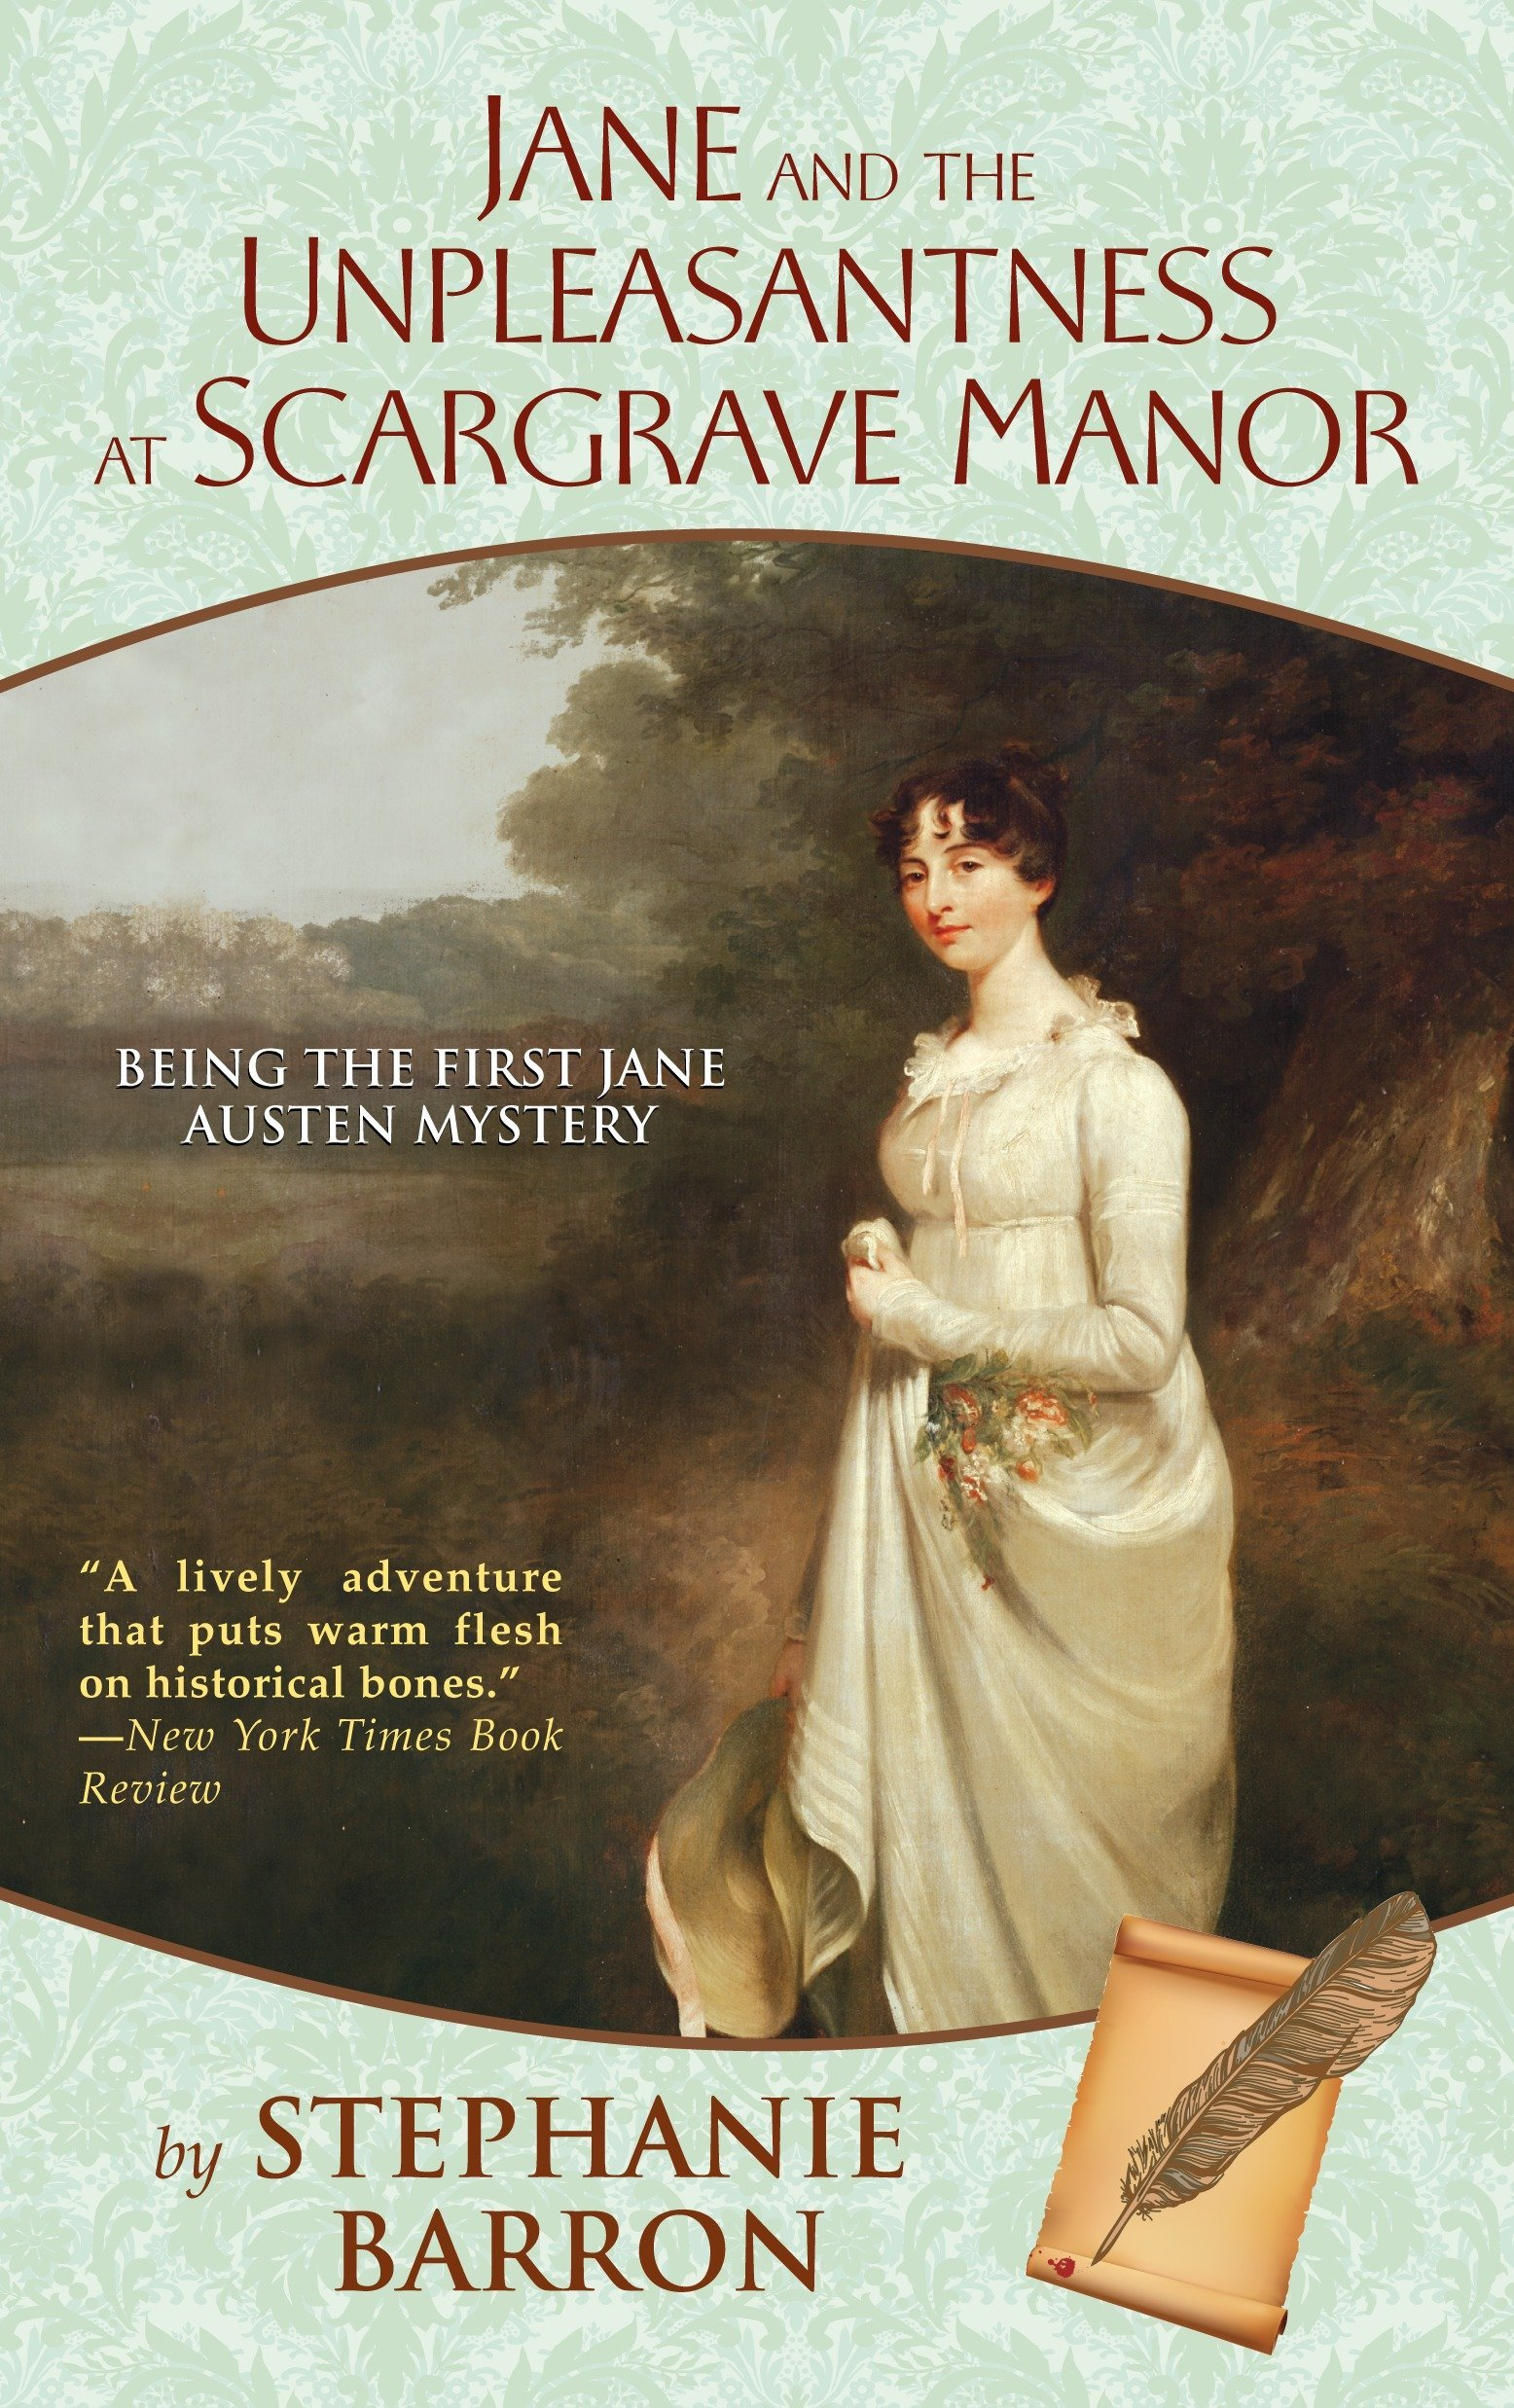 Download Jane and the Unpleasantness at Scargrave Manor: Being the First Jane Austen Mystery (Being A Jane Austen Mystery) ebook